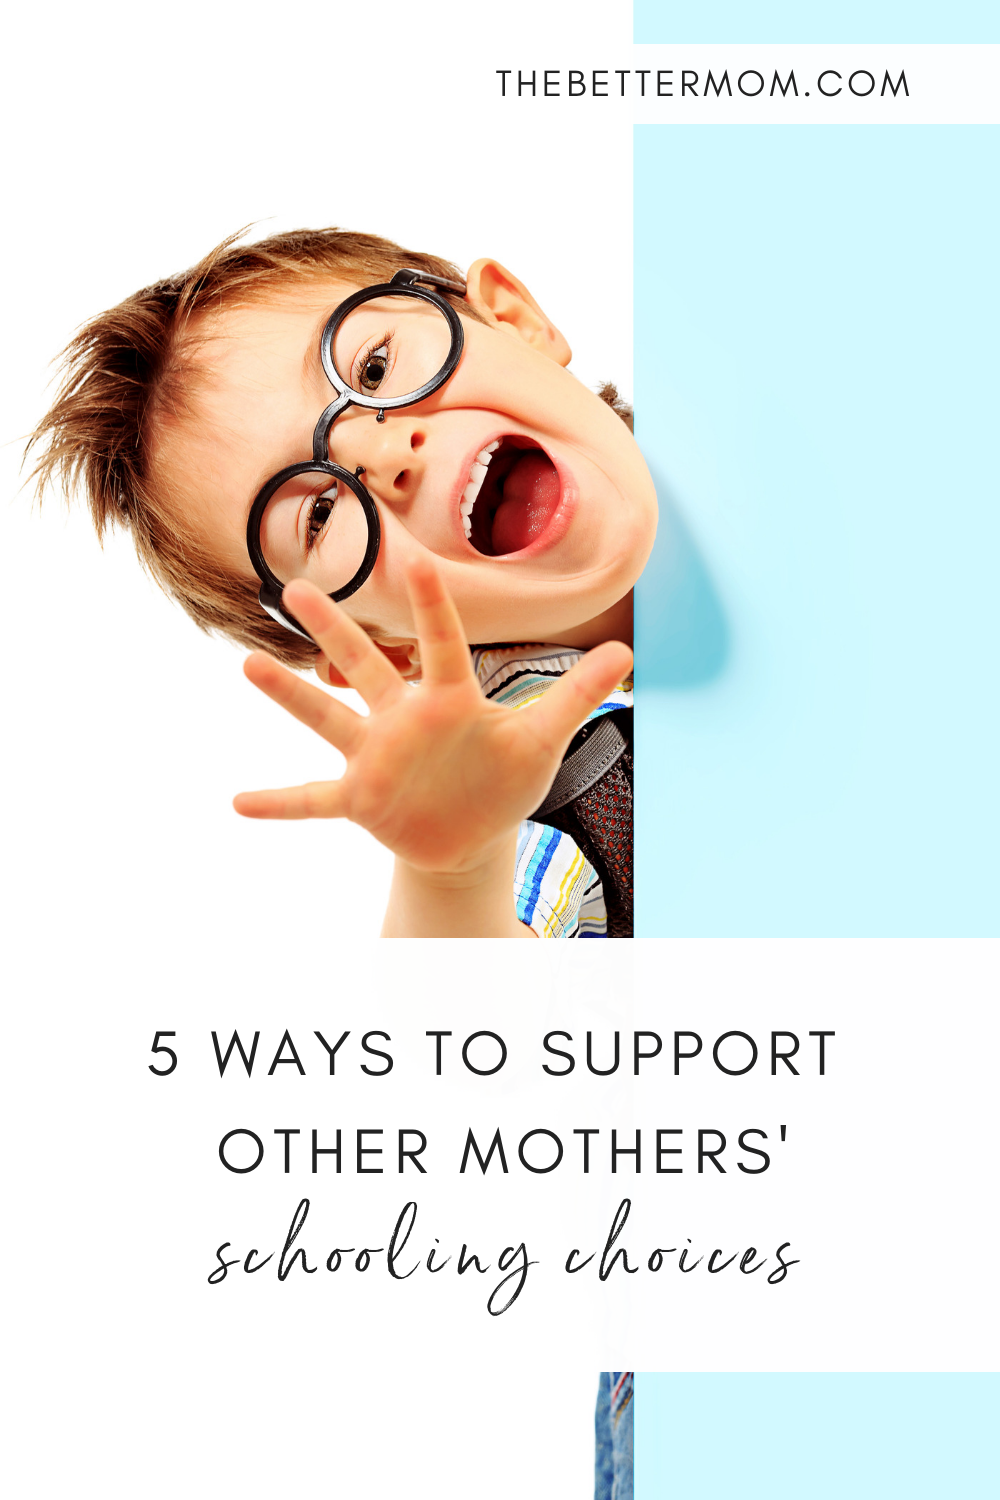 5 Ways to Support Other Mothers' Schooling Choices